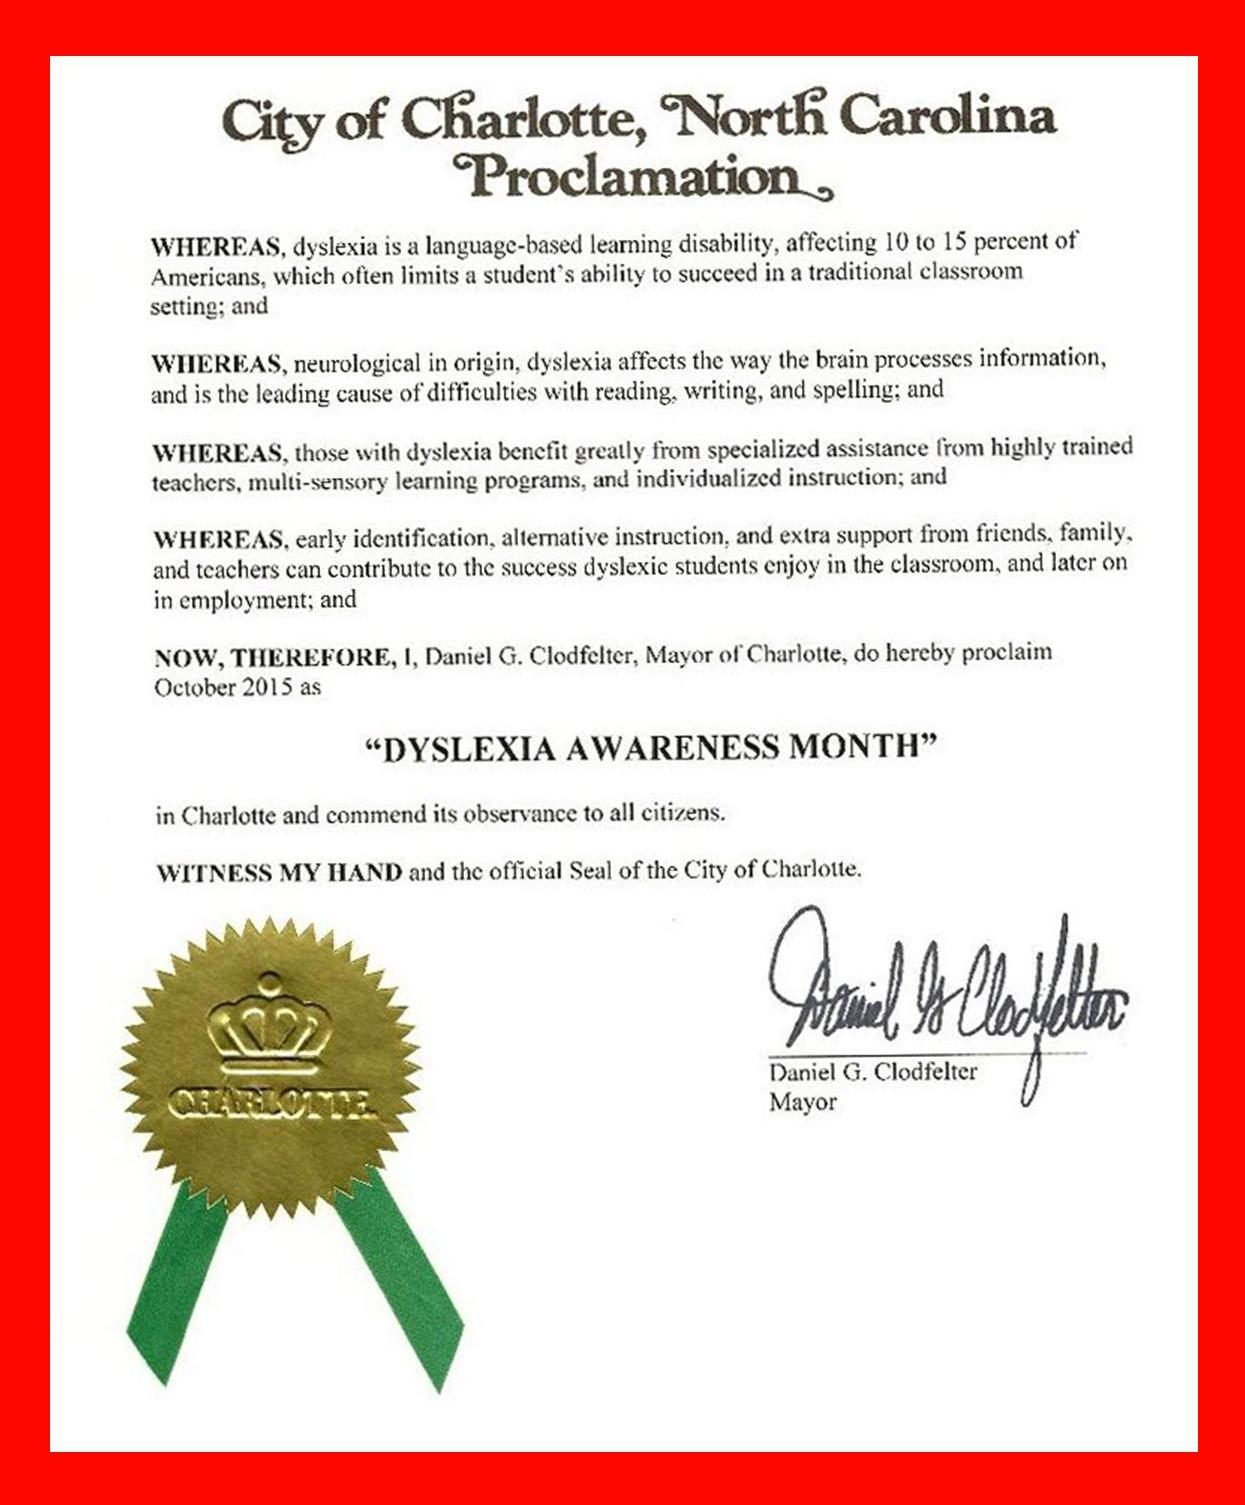 Cities across North Carolina are declaring October Dyslexia Awareness Month!